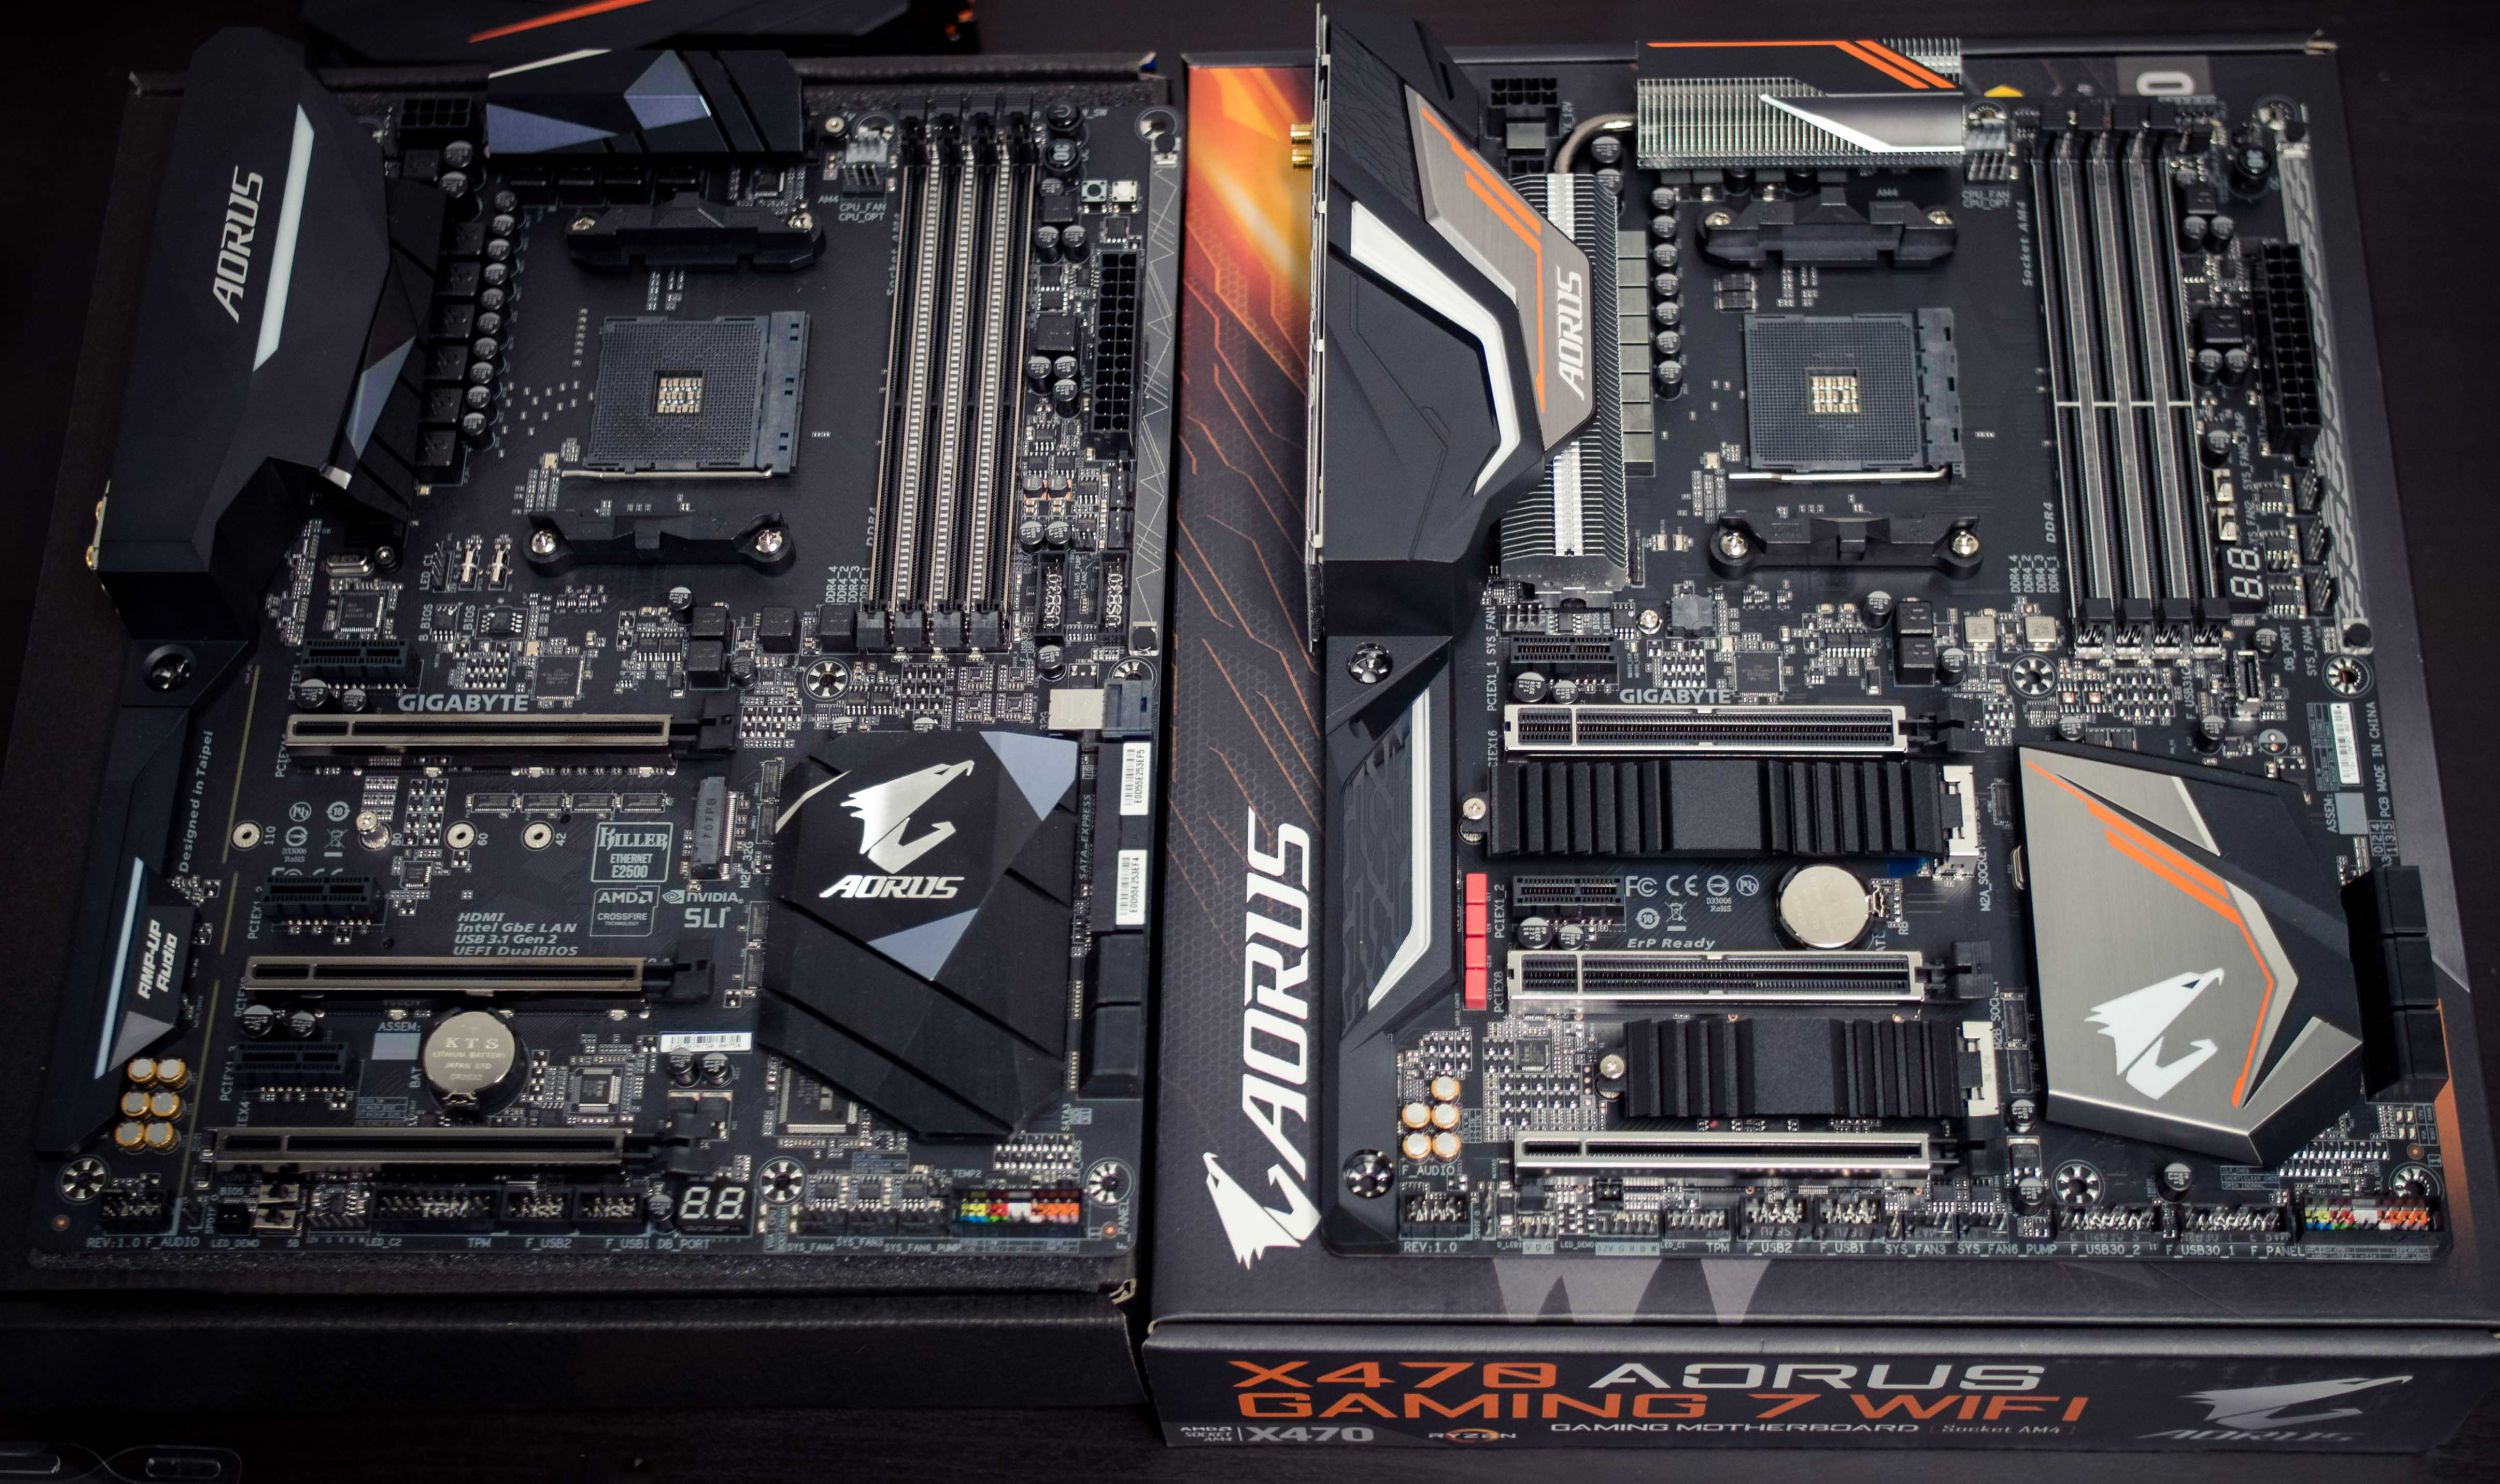 Compared to the previous generation, the X470 AORUS Gaming 7 rocks a bigger and better heat sink.